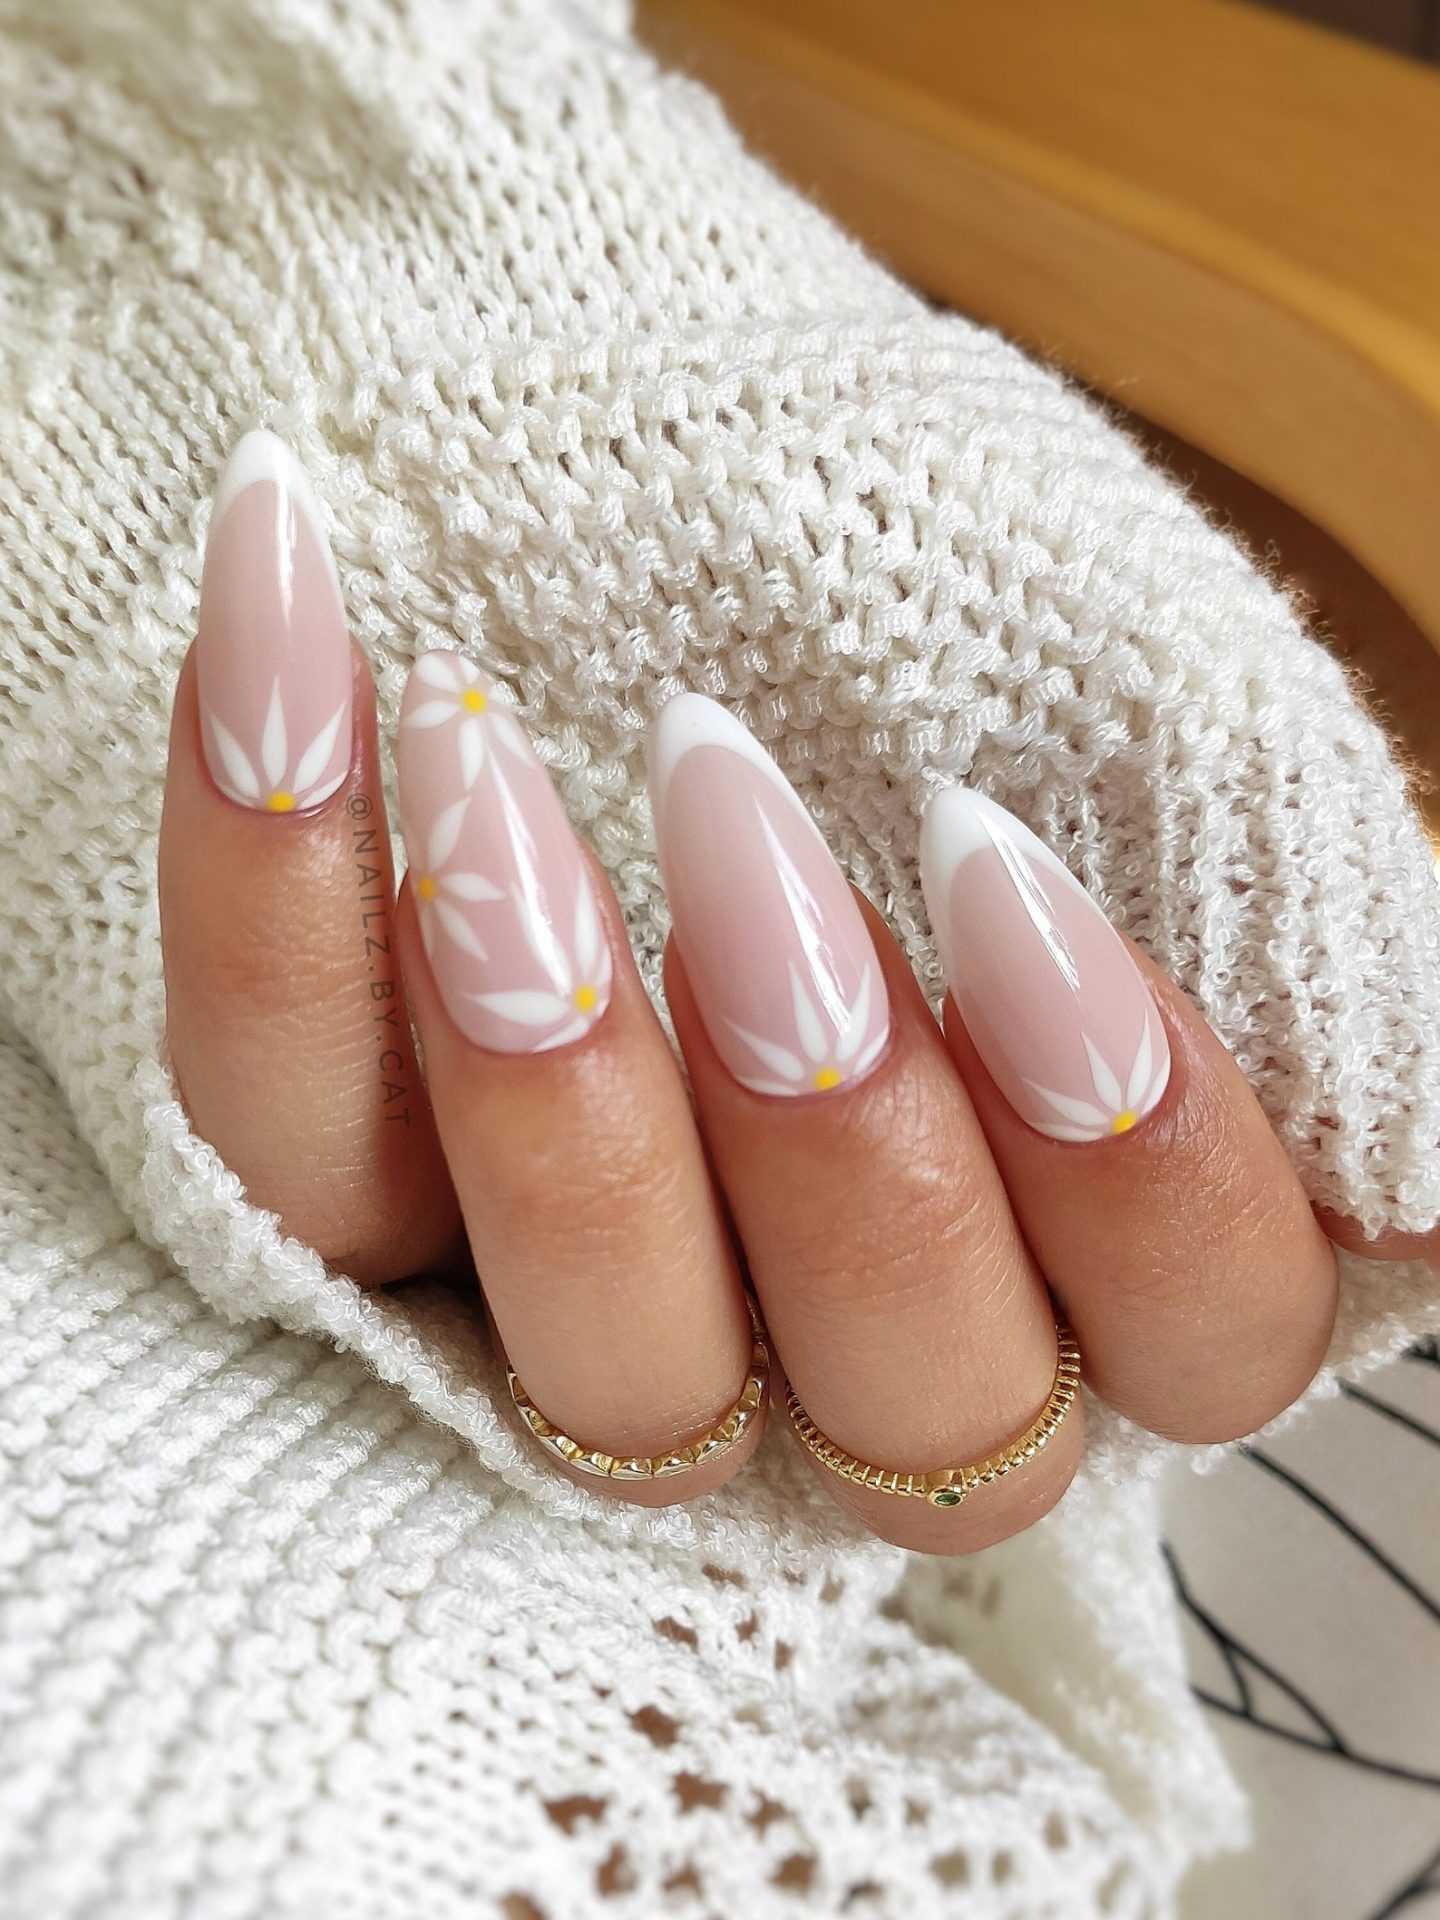 Cute daisy nails with French tips